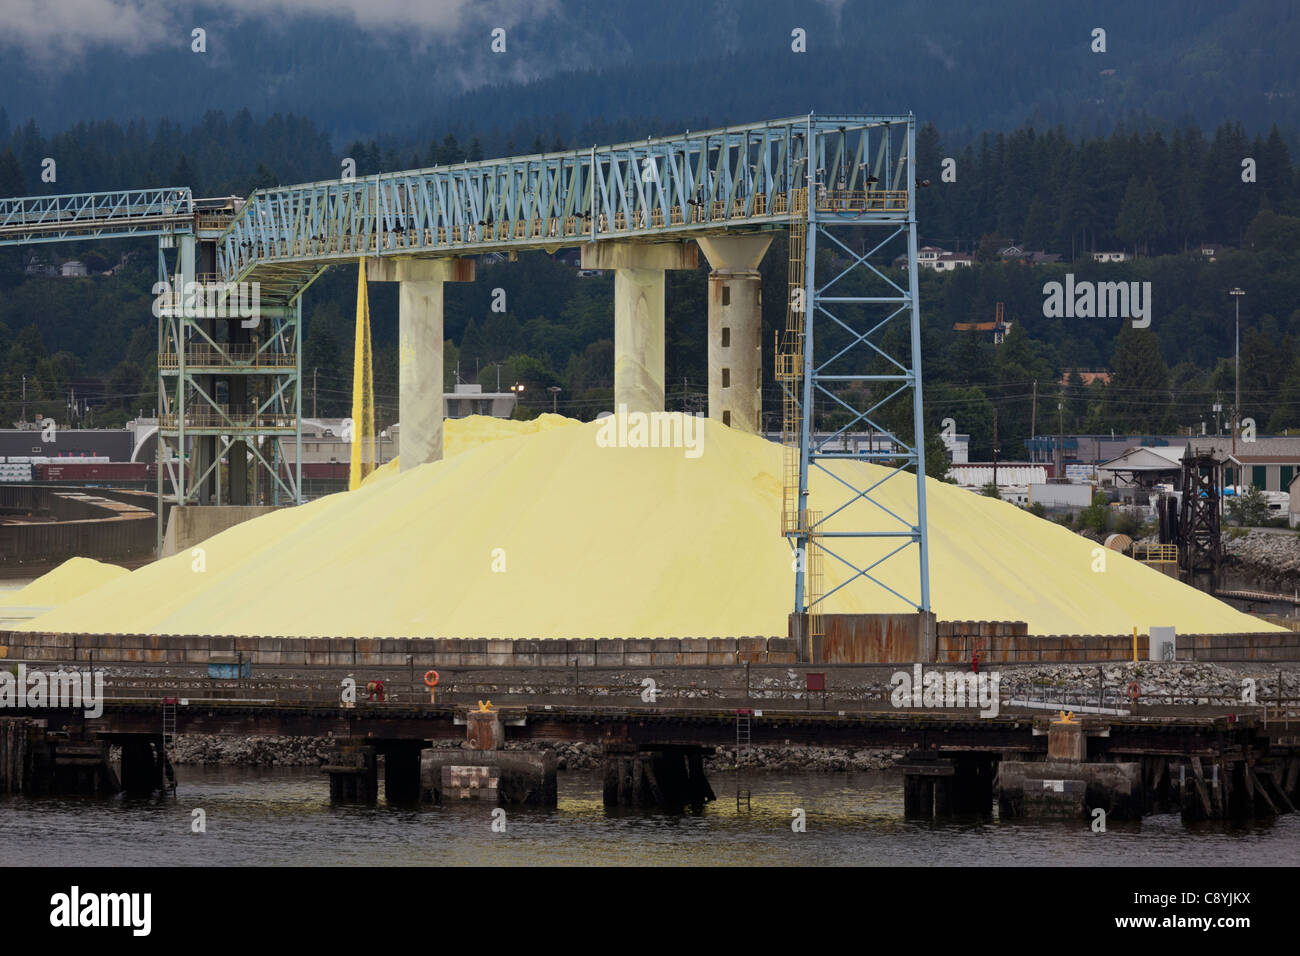 A sulfur pile is processed on the waterfront in Vancouver, Canada - Stock Image